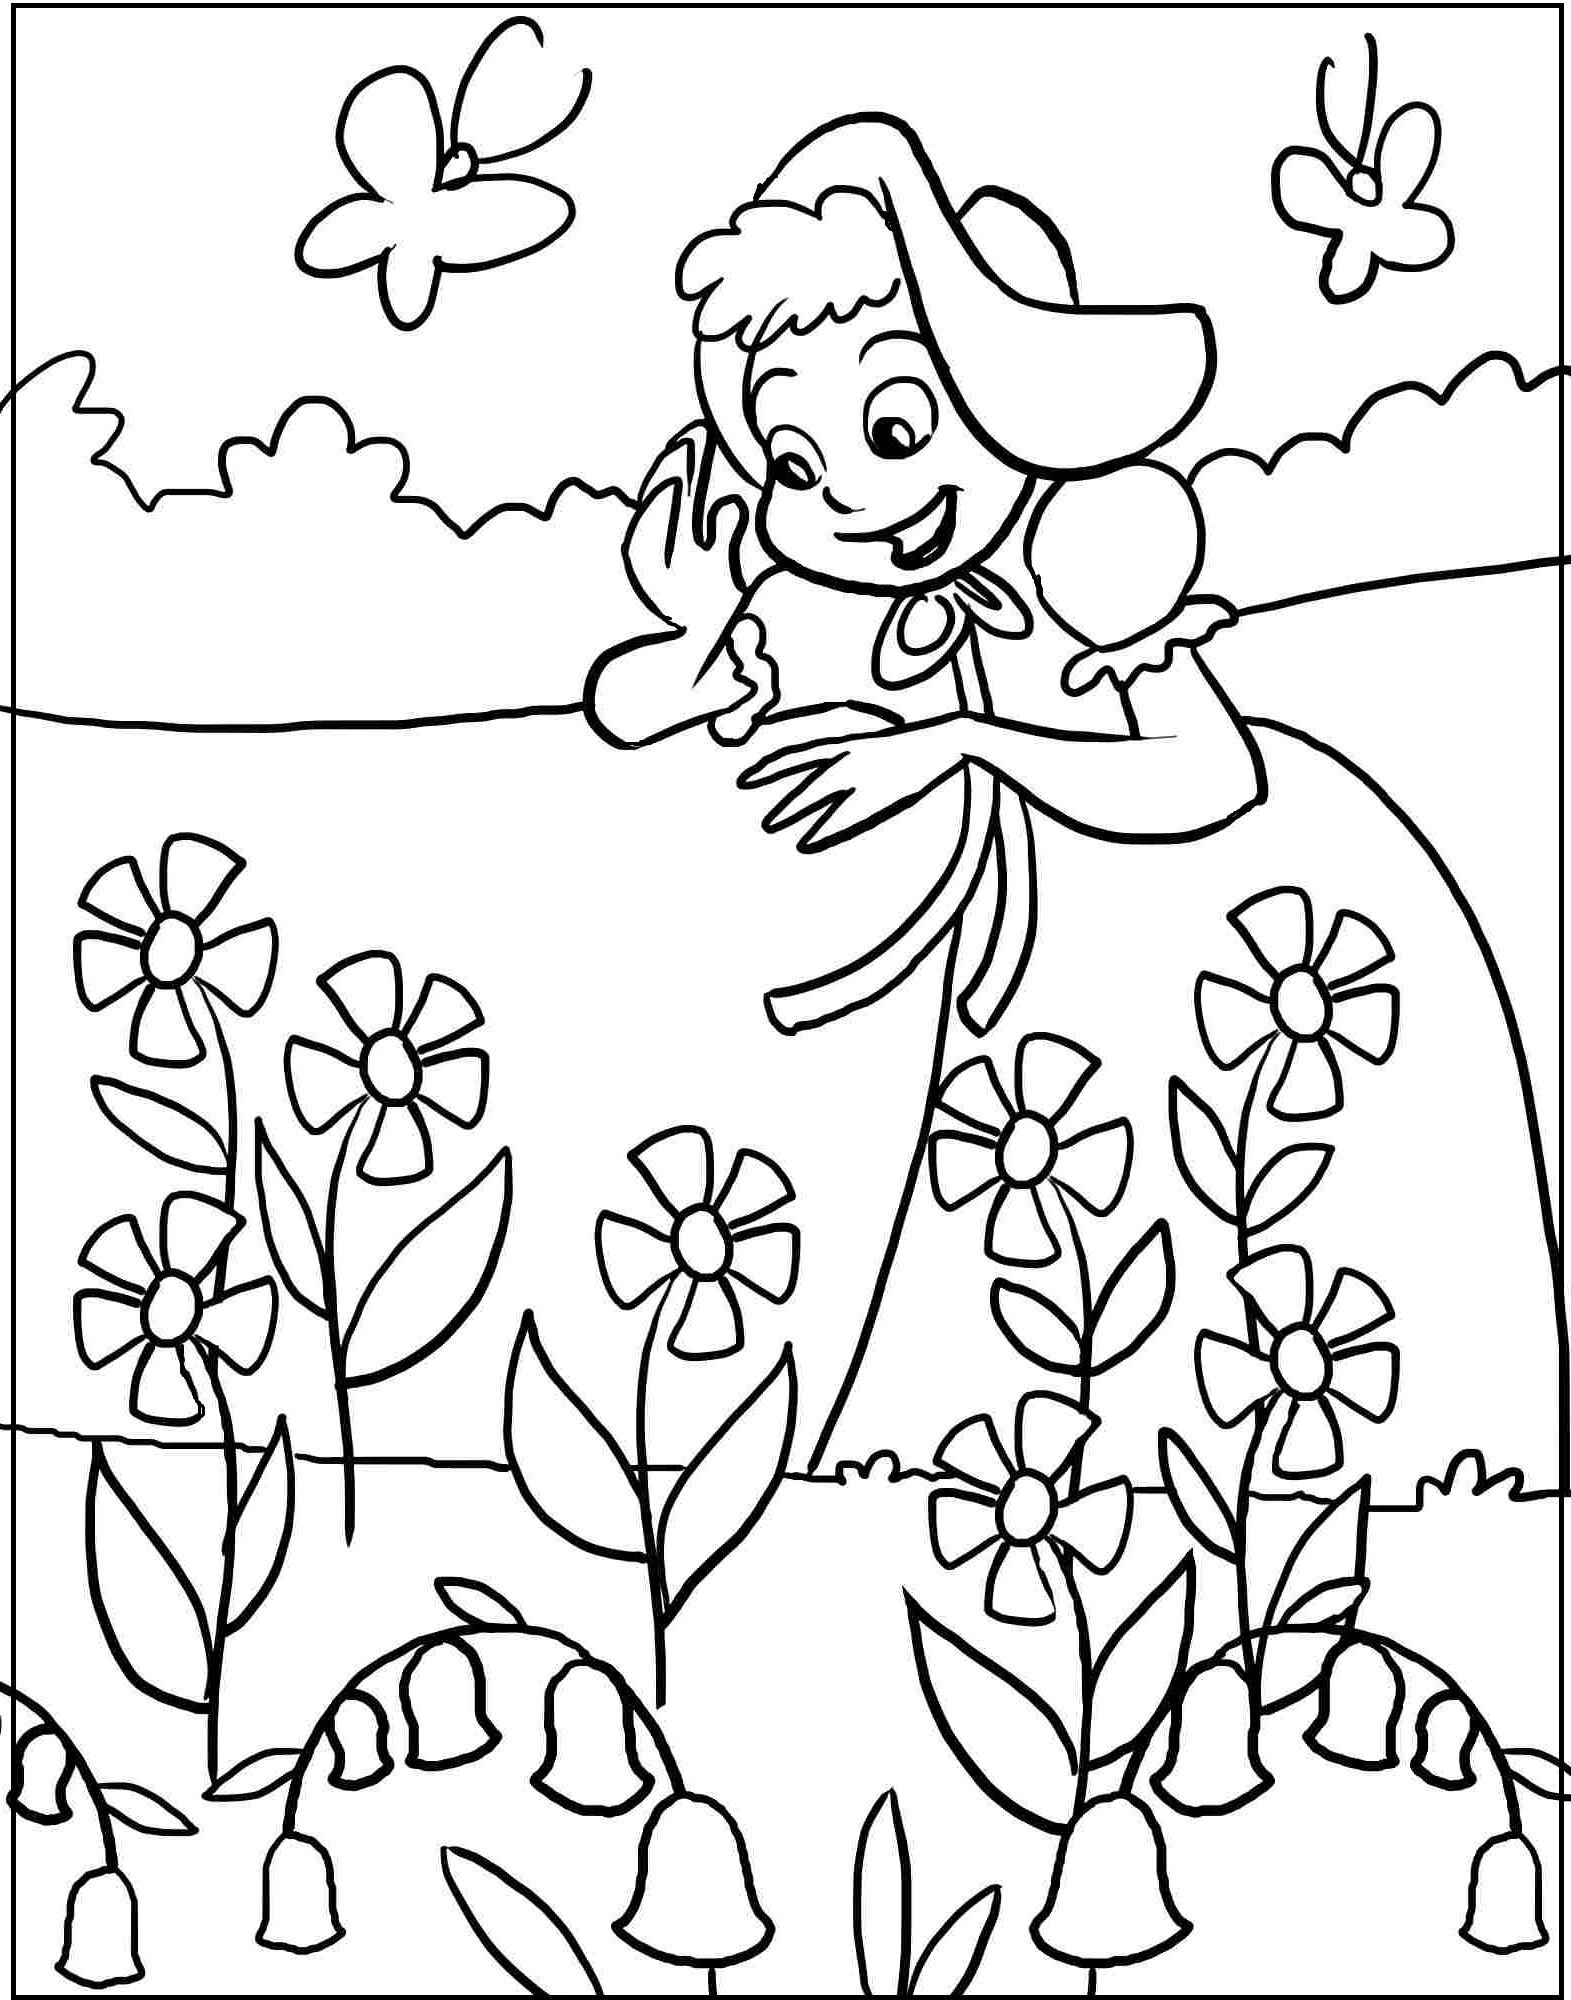 spring coloring pages for kids free spring coloring pages for kids at getdrawings free coloring pages kids for spring